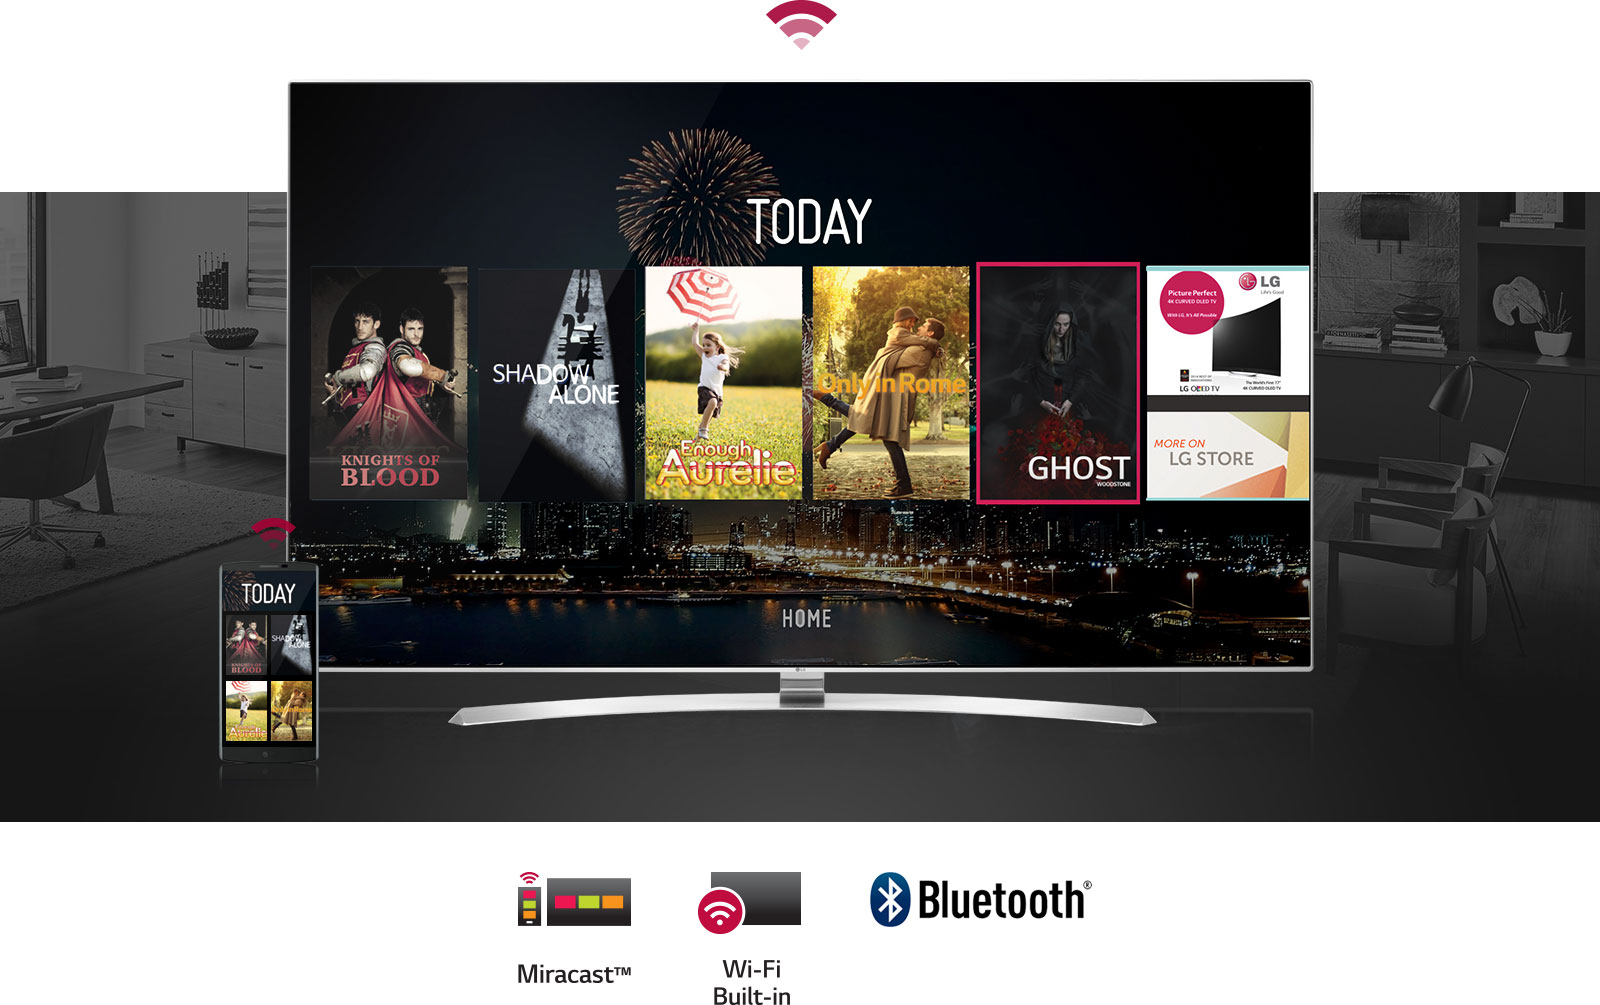 Connect laptop to smart tv via bluetooth